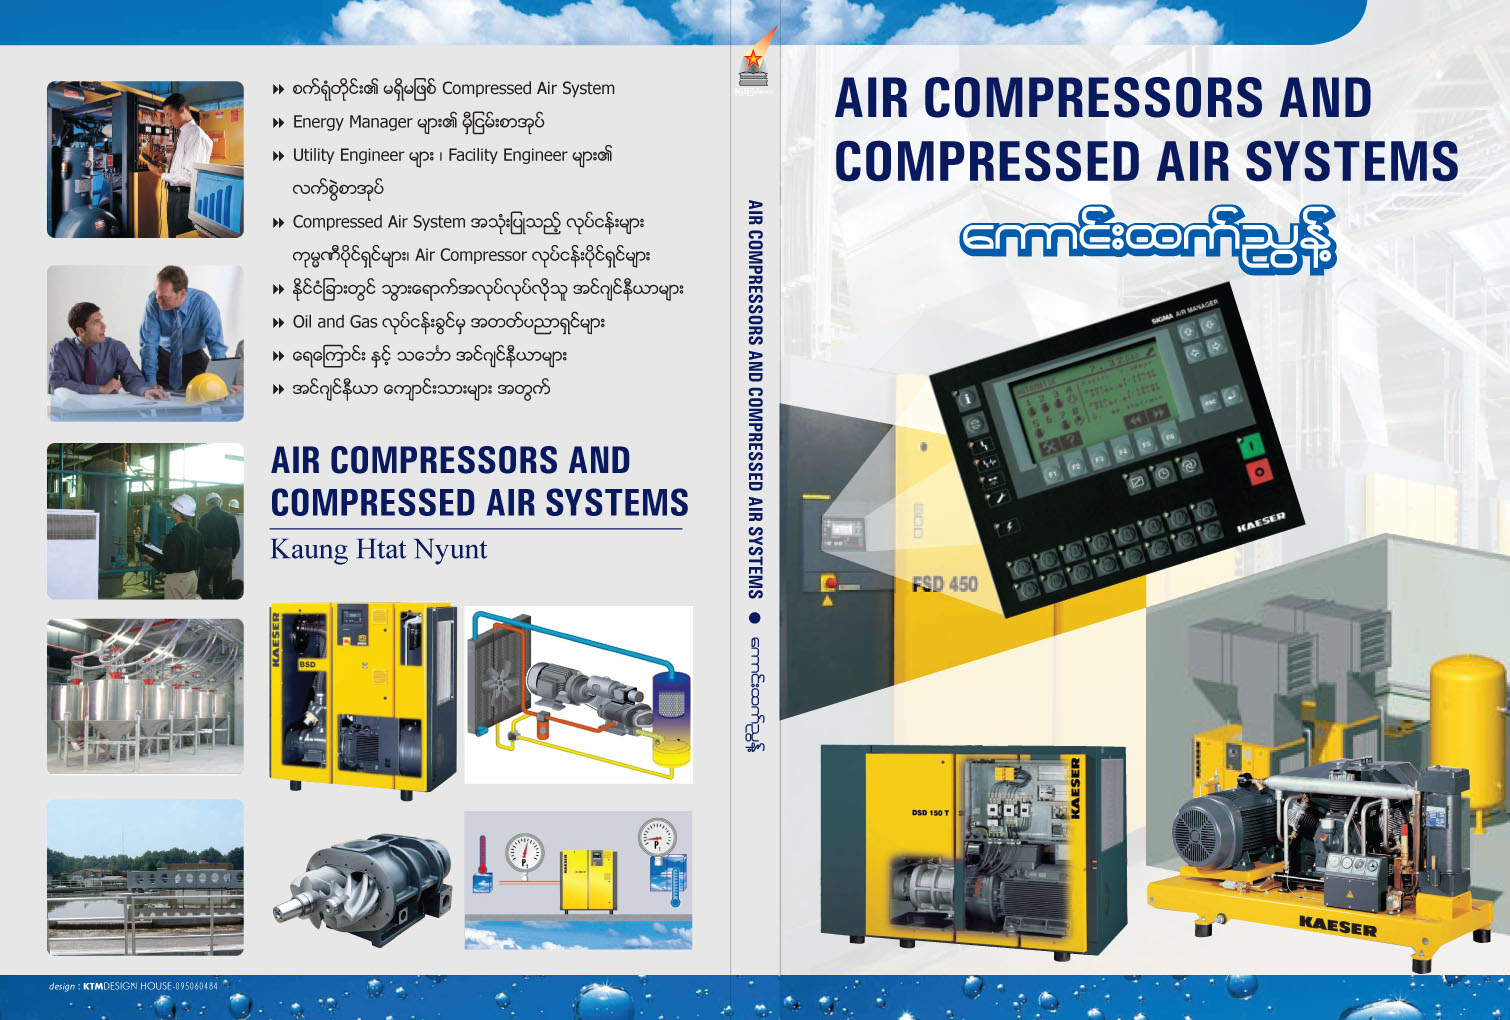 Air Compressors and Compressed Air Systems